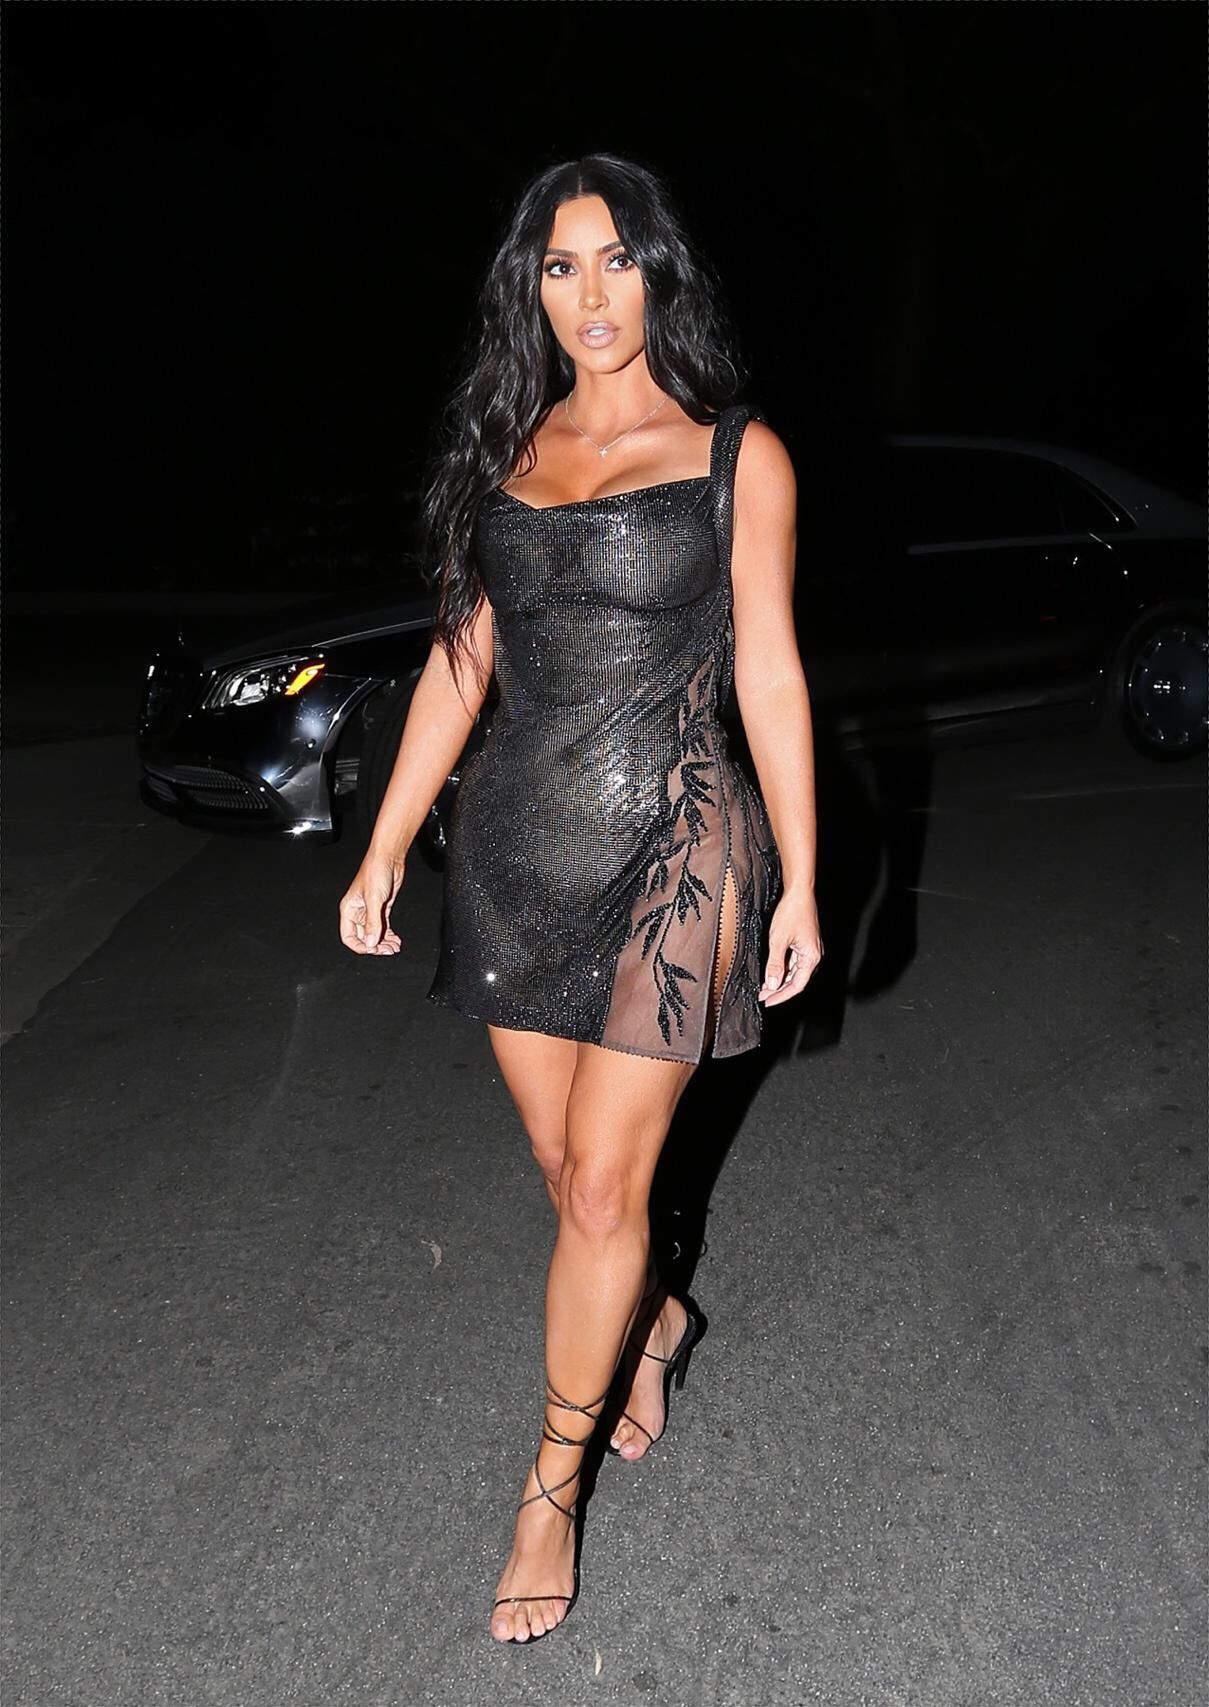 Kim Kardashian Stopped At Gas Station Wearing A Tiny See Through Dress There Are Photos